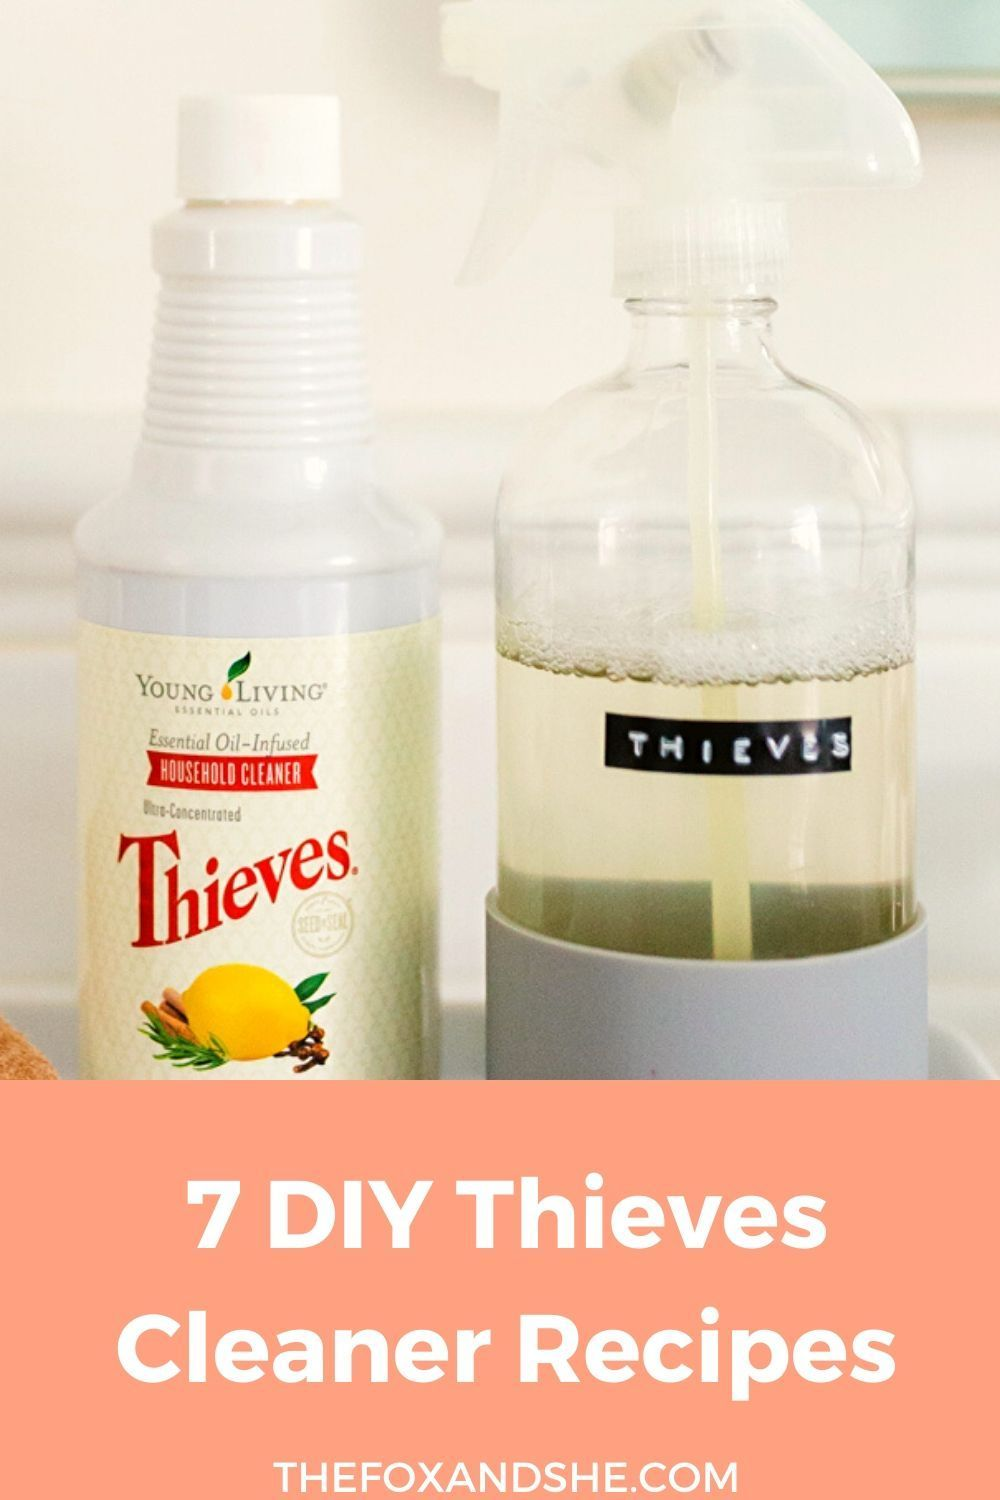 7 diy thieves cleaner recipes in 2020 thieves cleaner